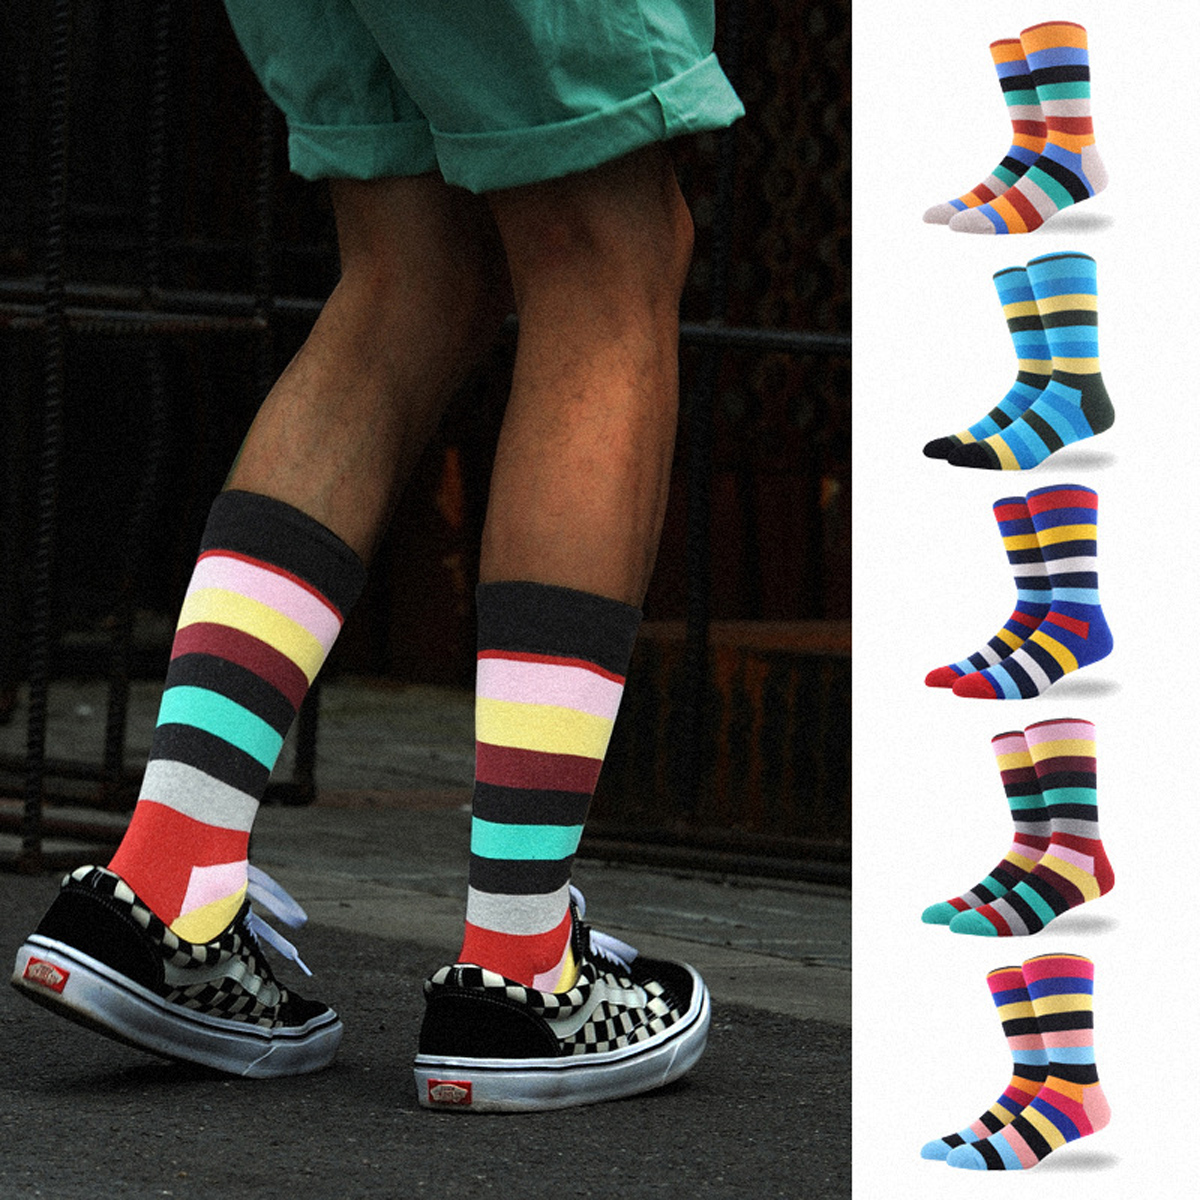 12Pairs Vintage Stripe Meias Creative Happy Socks Funny Sock Business Skateboard Calcetines Hombre Hip Hop Socks Mens Weed Socks